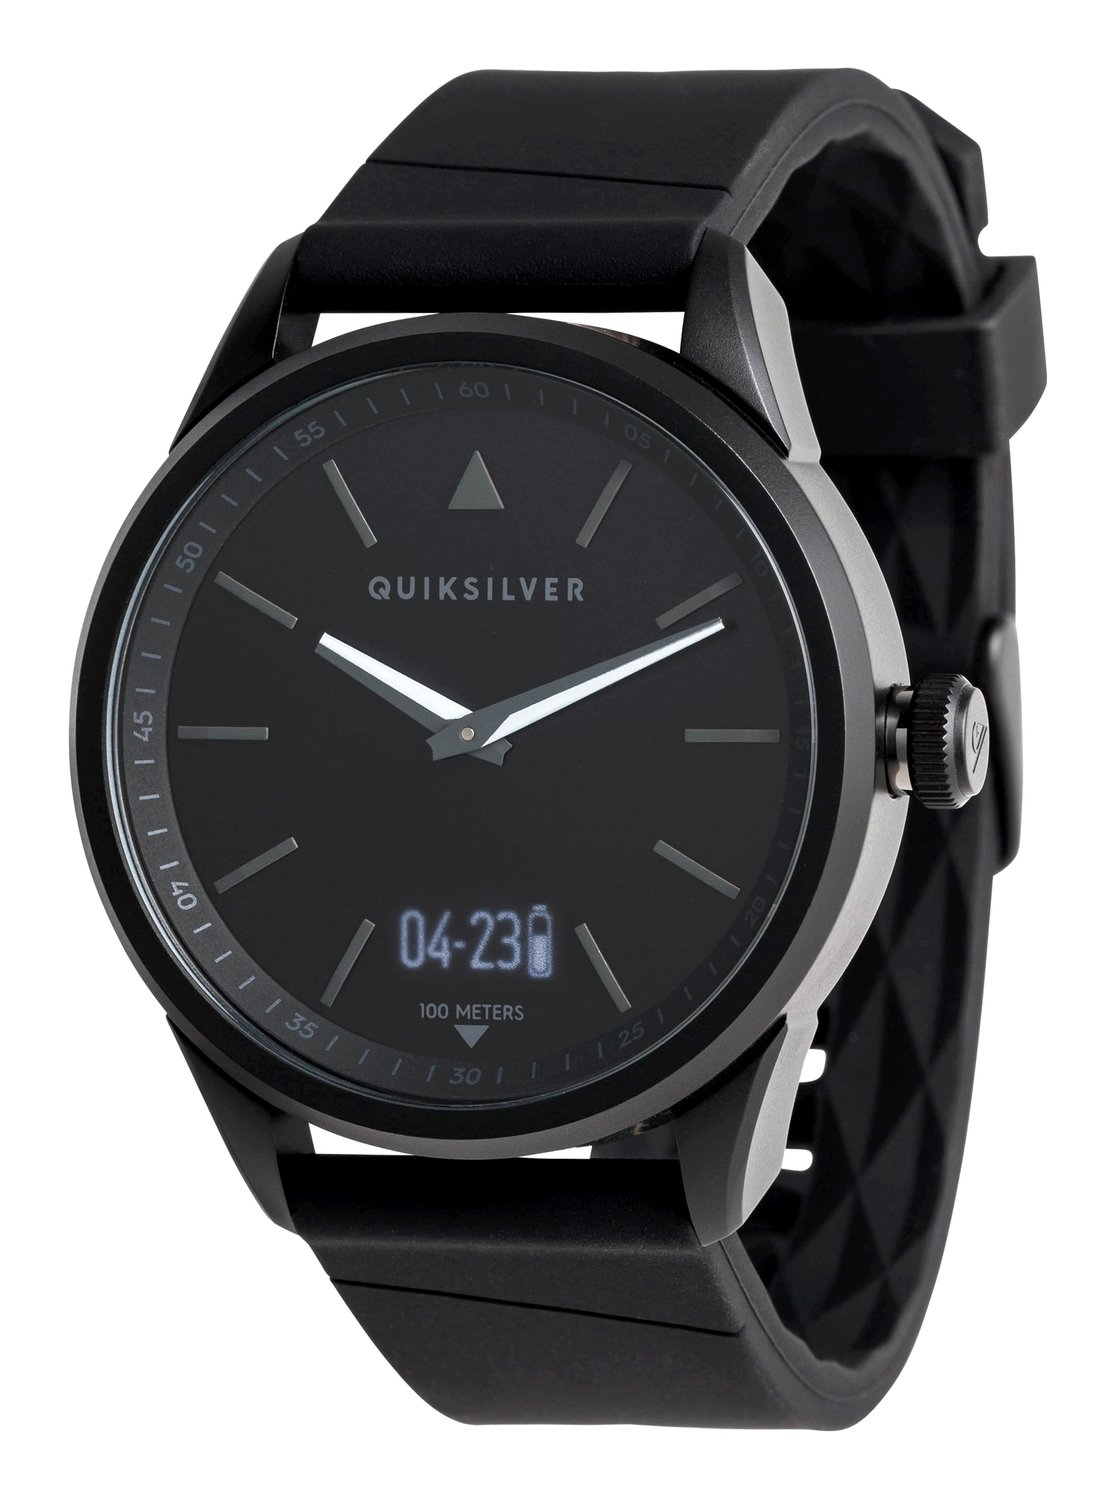 Quiksilver Digitaluhr The Timebox Activ Herrenmode/Schmuck & Accessoires/Uhren/Digitaluhren